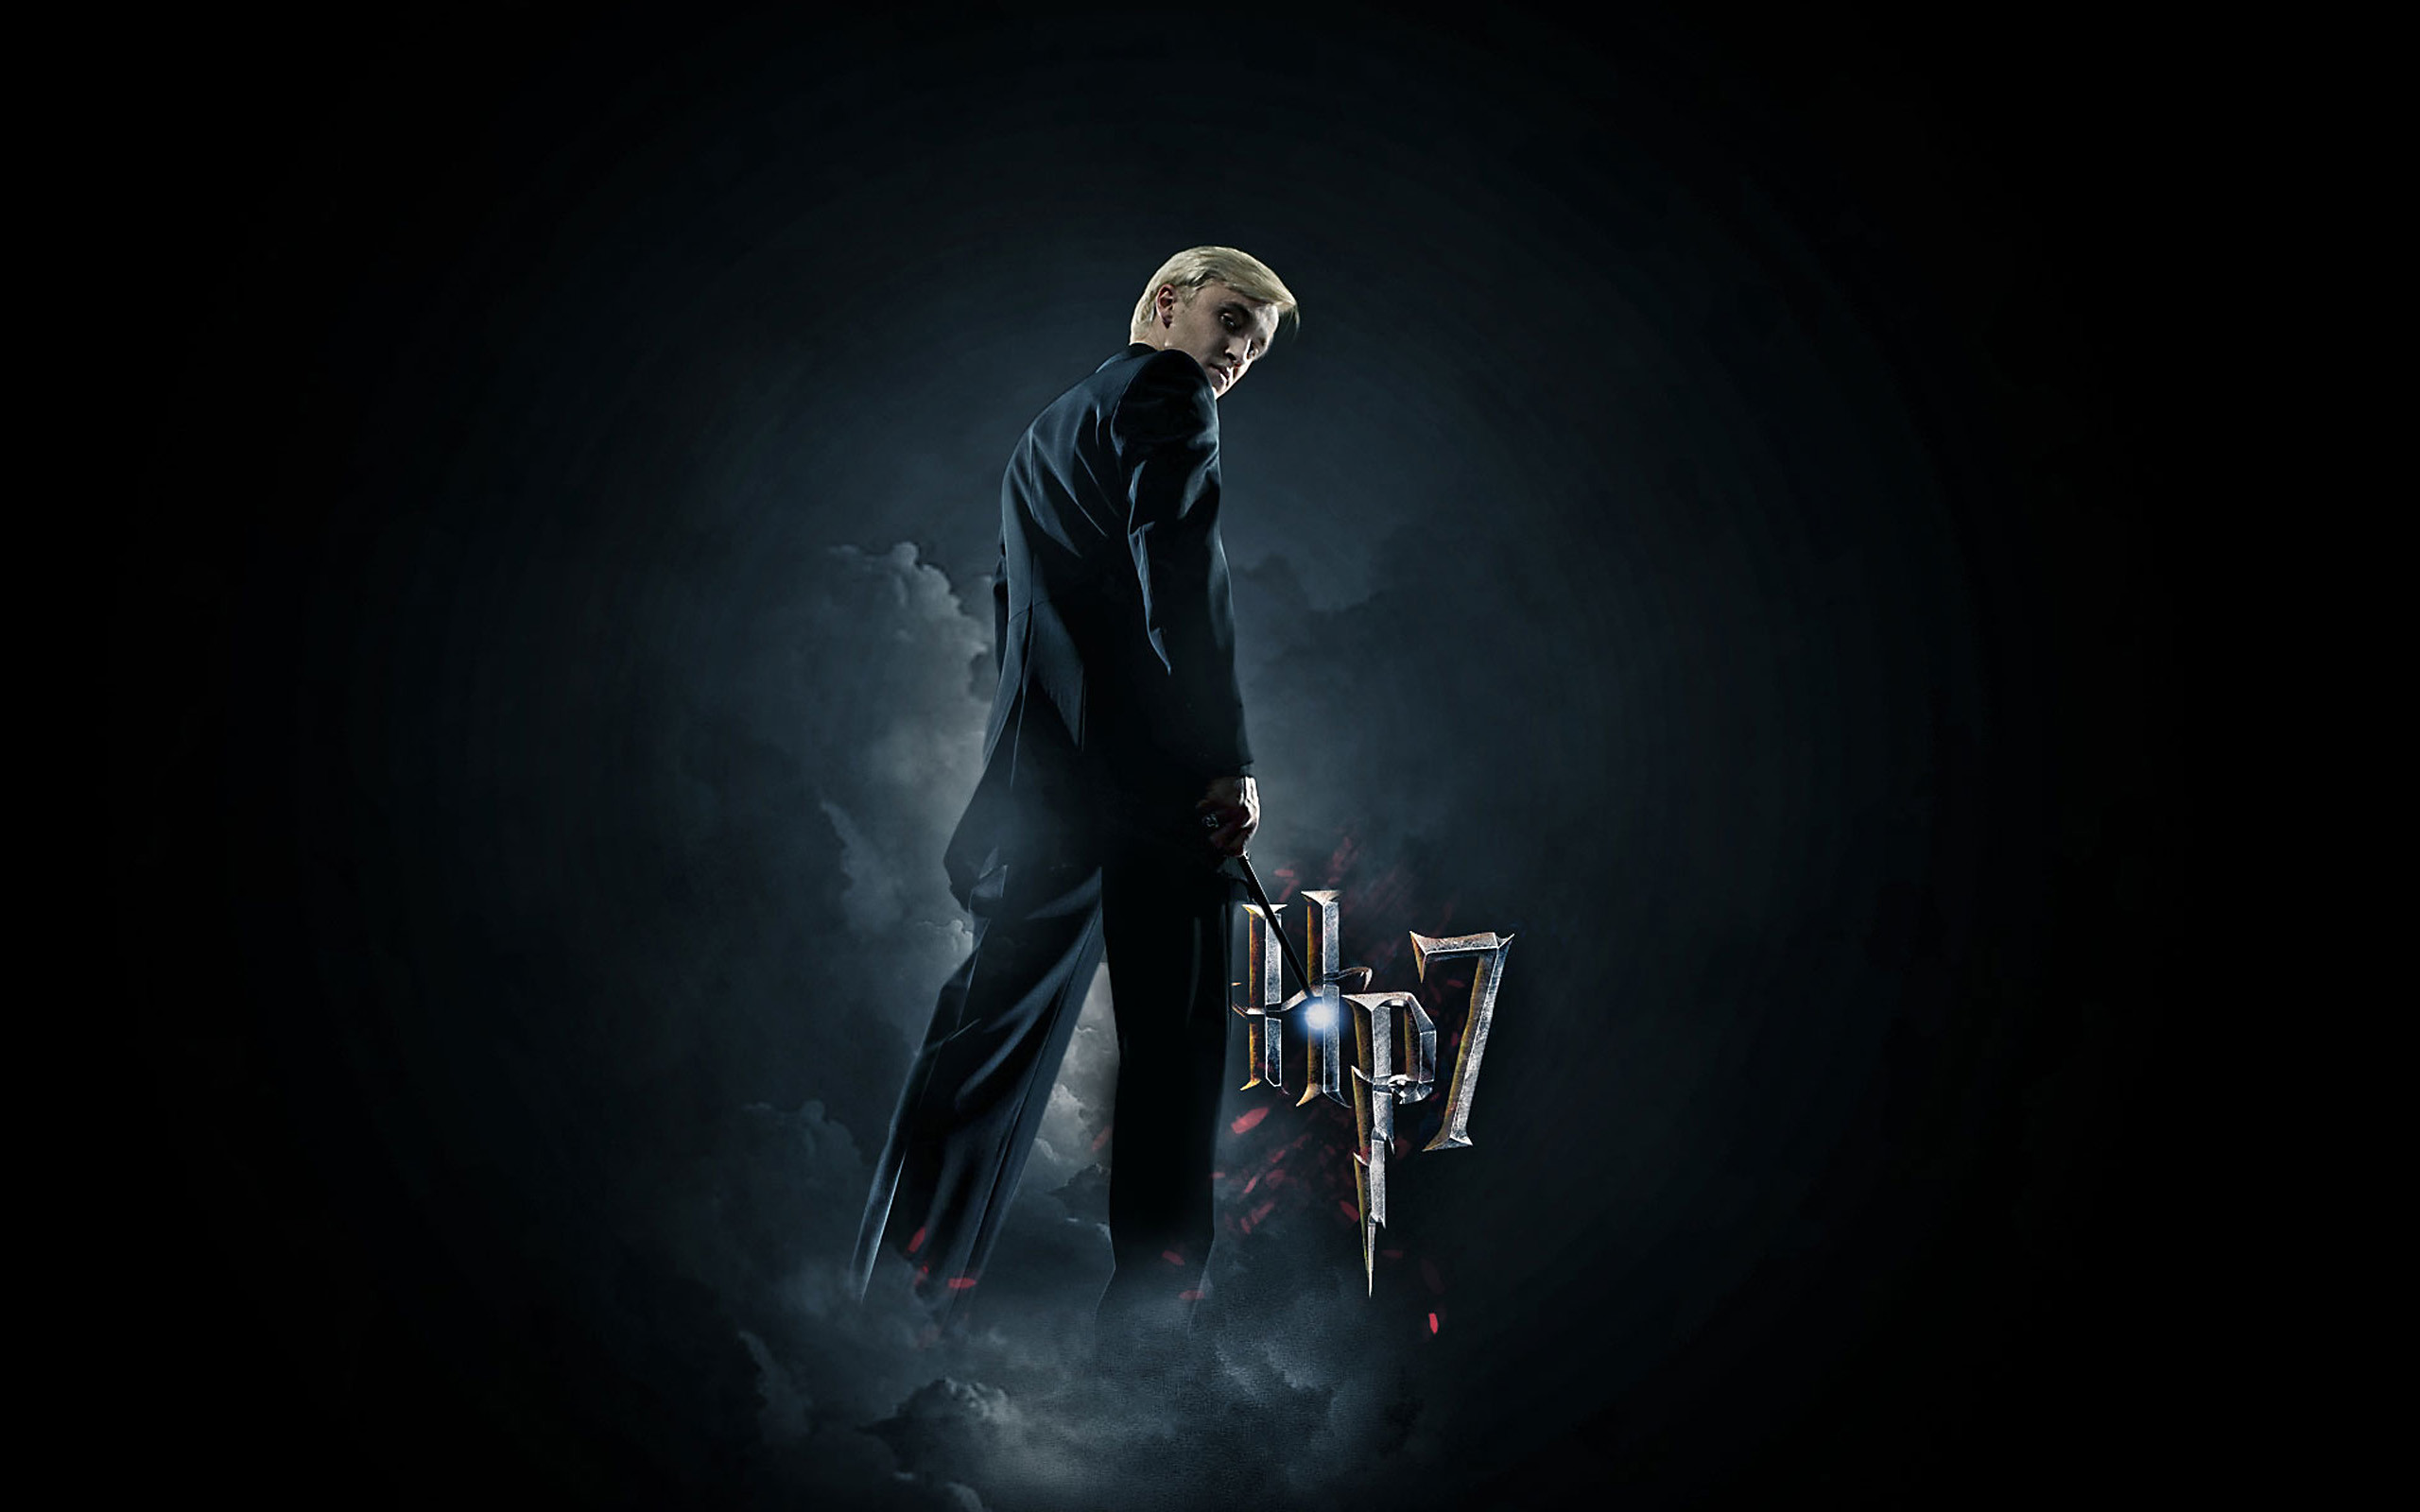 Draco Malfoy 2560ã—1600 Hp7   Data-src - Harry Potter And The Deathly Hallows: Part Ii (2011) - HD Wallpaper